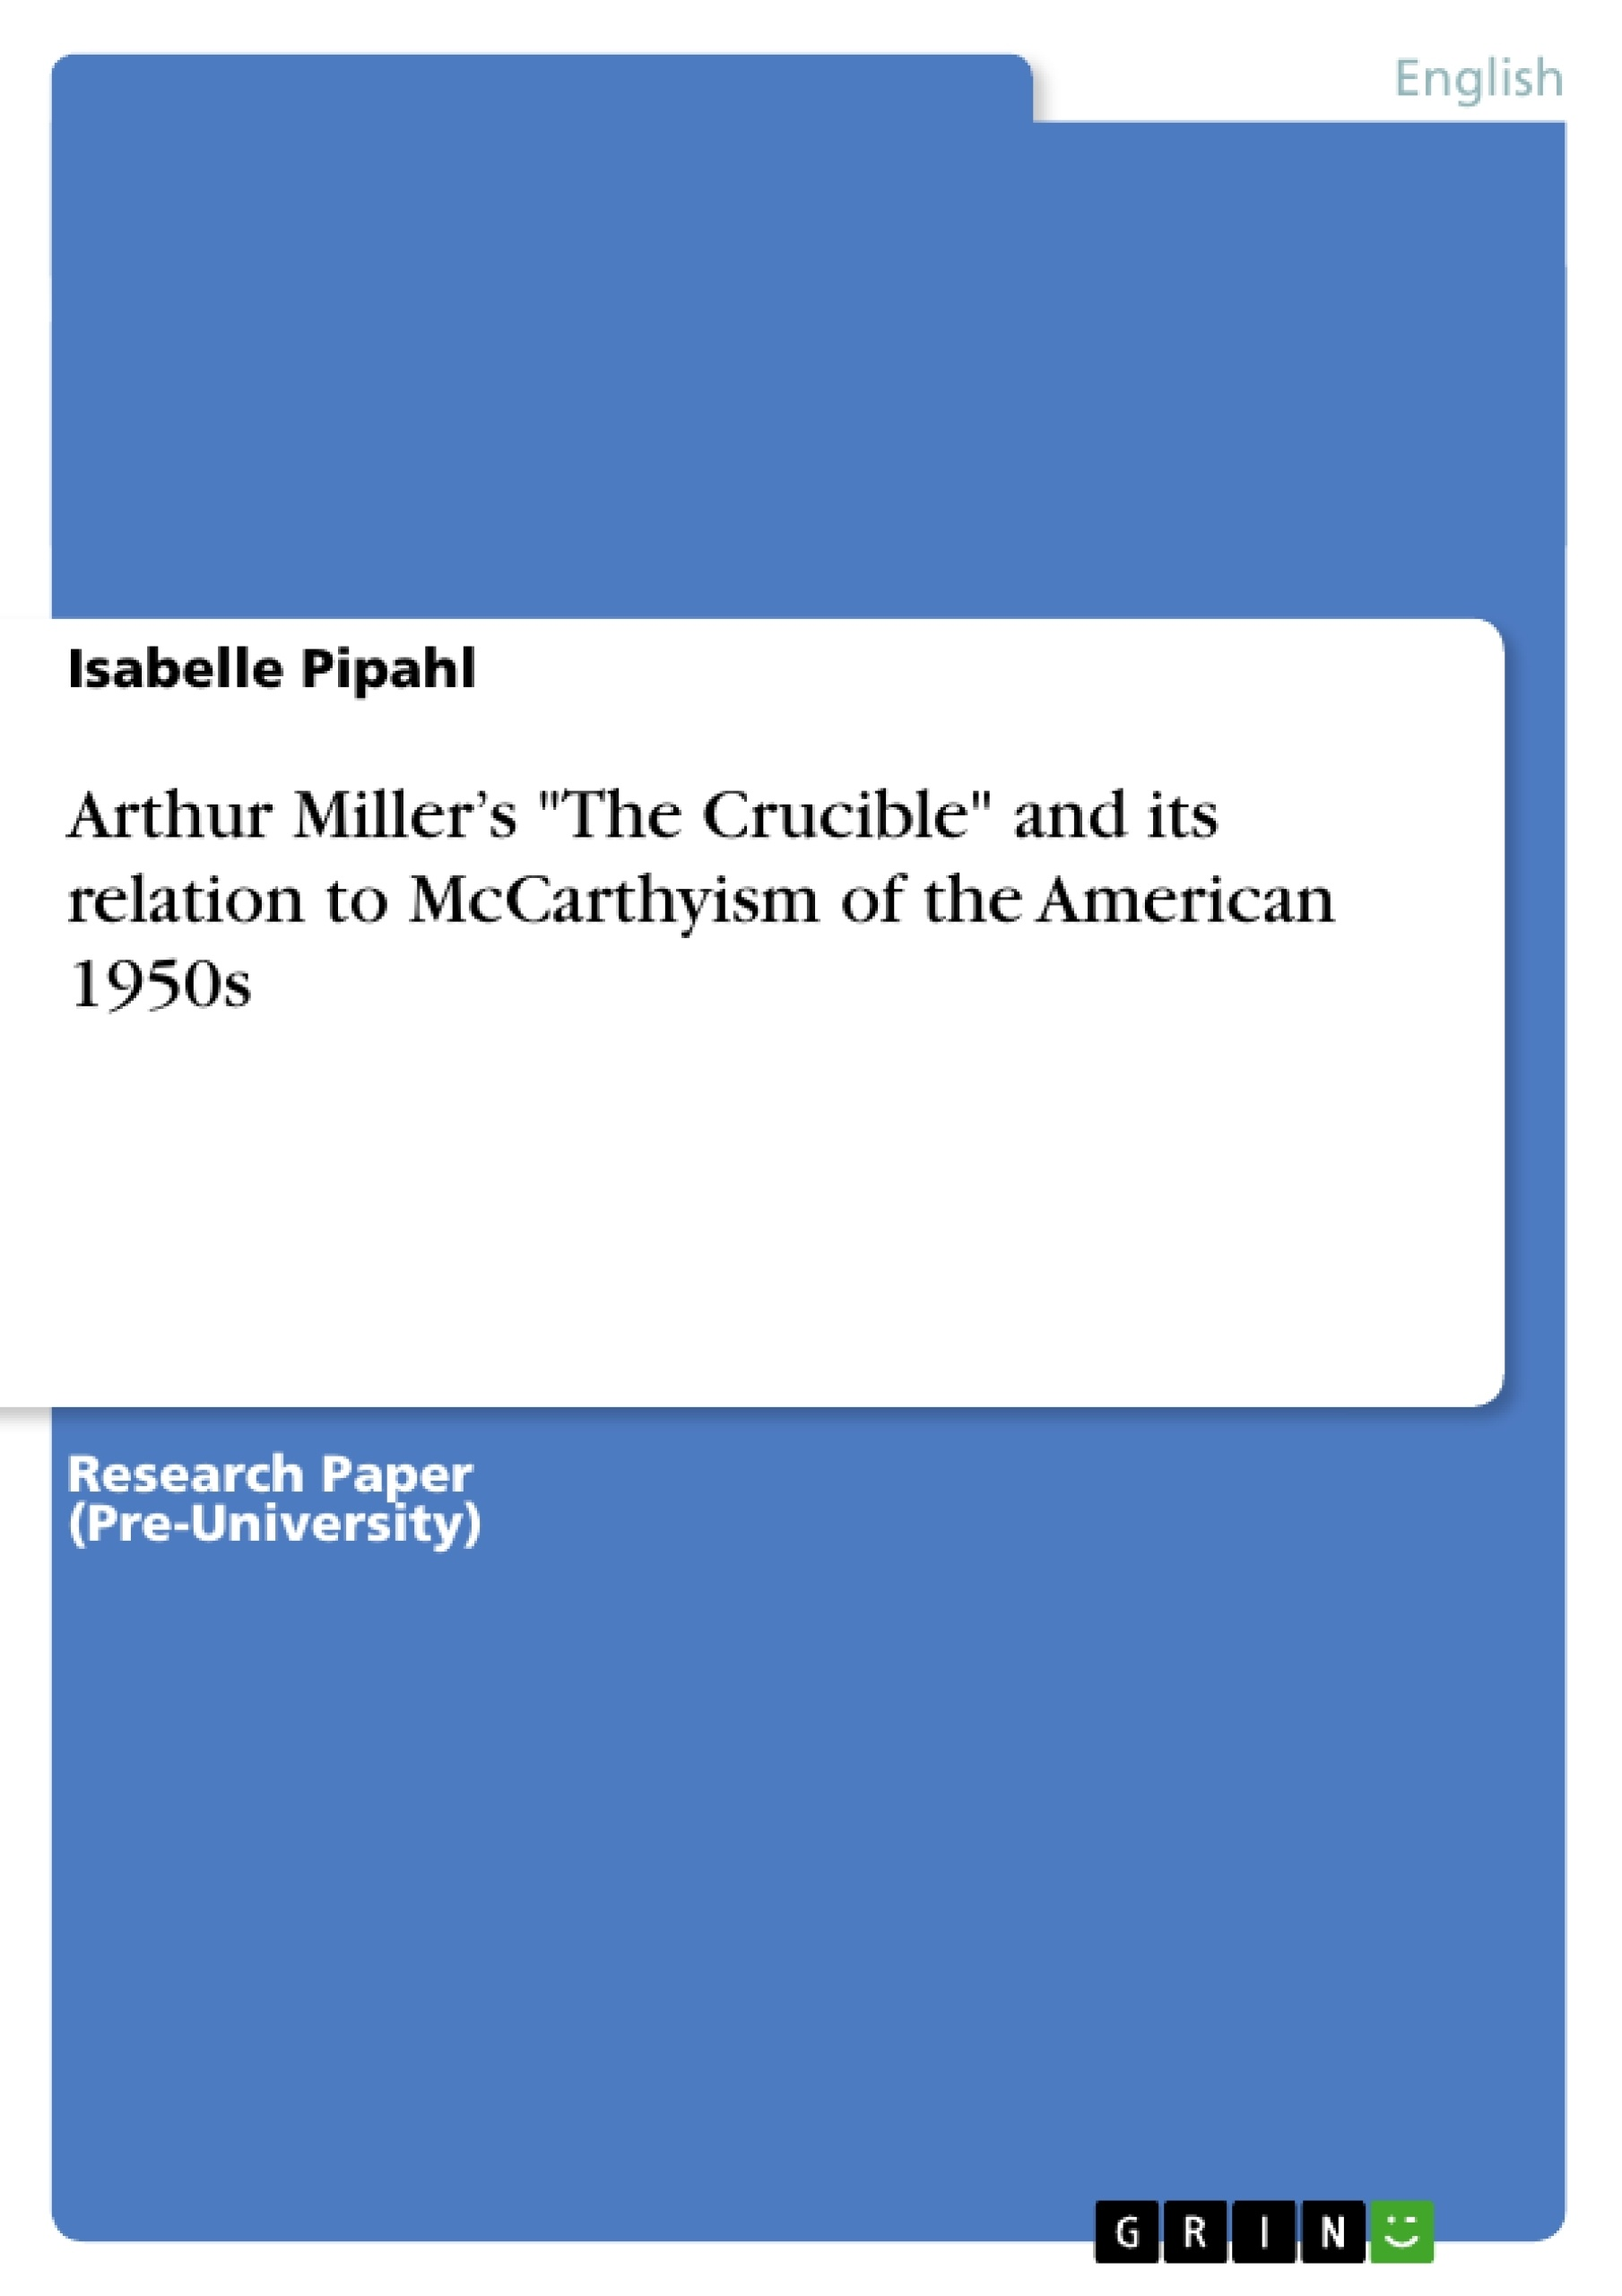 arthur miller s the crucible and its relation to mccarthyism of arthur miller s the crucible and its relation to mccarthyism of publish your master s thesis bachelor s thesis essay or term paper